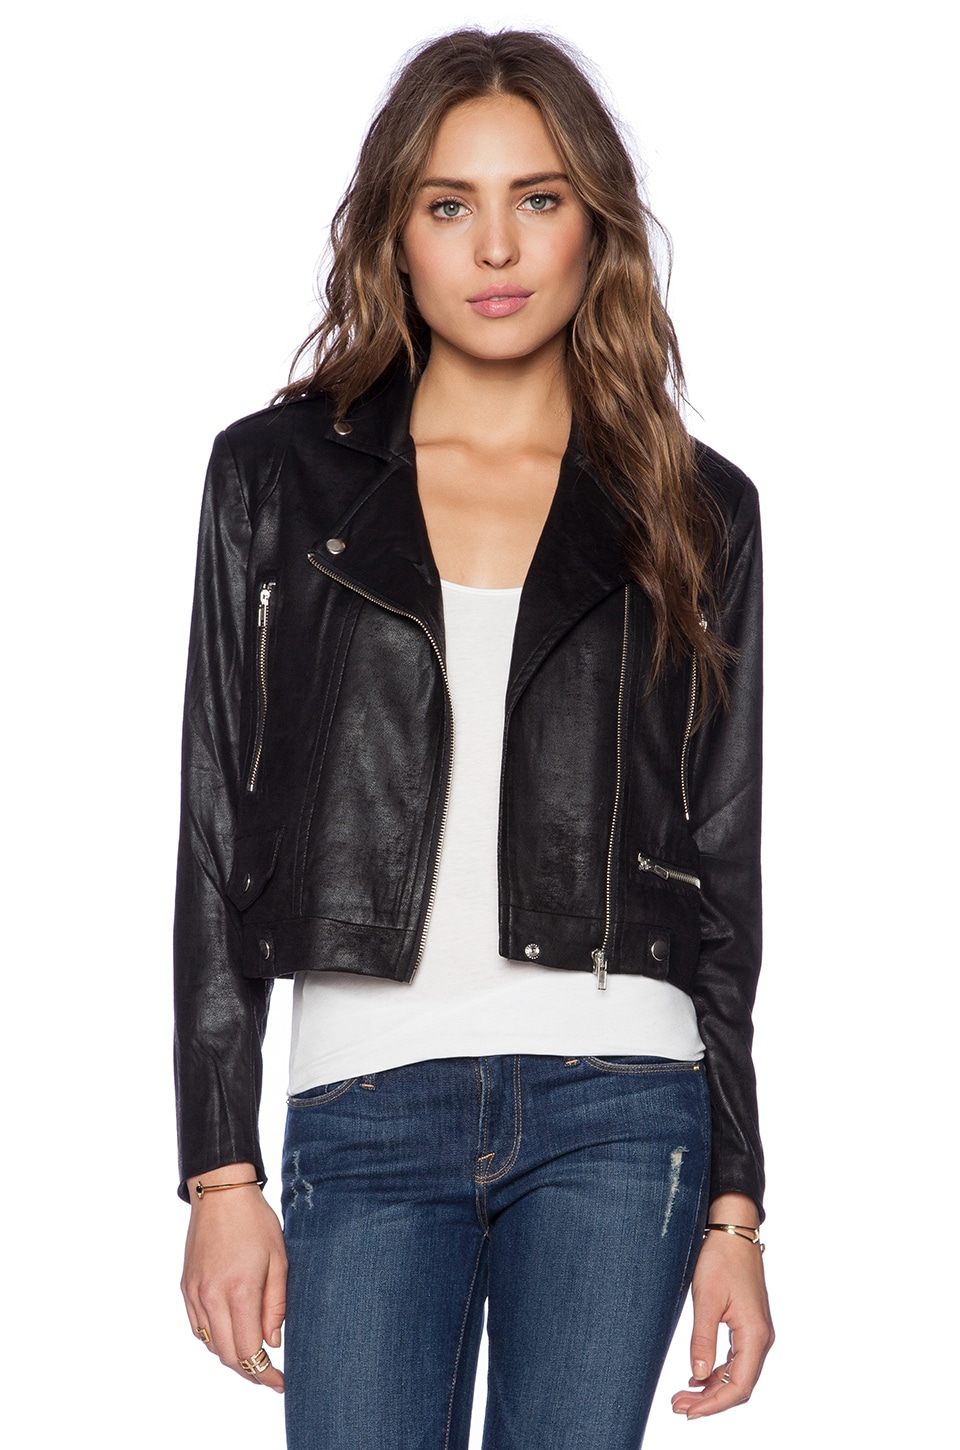 Leather Jackets For Teen Girls - Jacket